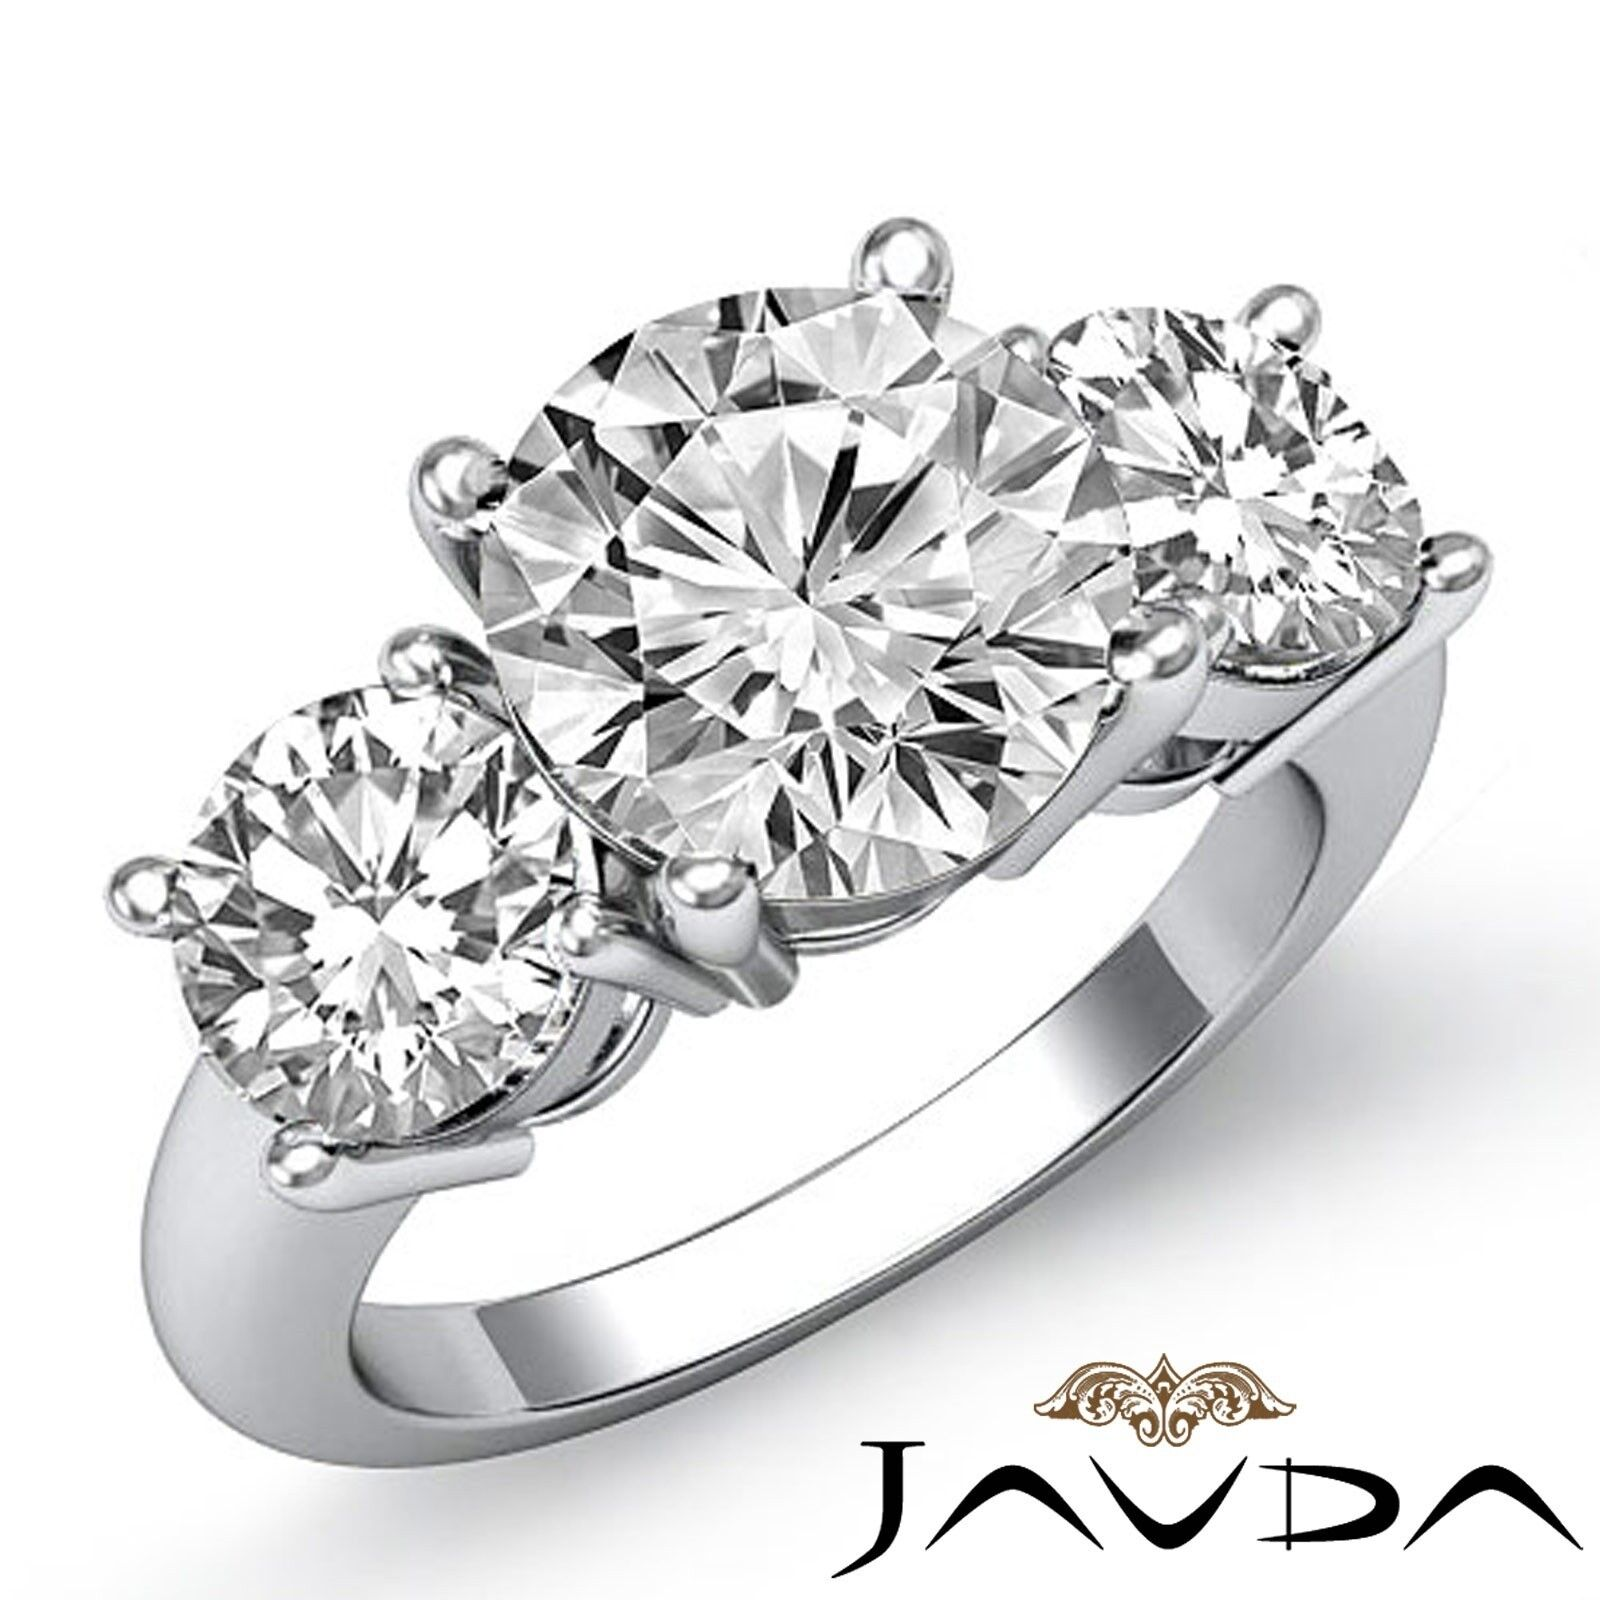 3.5ctw Classic 3 Stone Prong set Round Diamond Engagement Ring GIA I-VVS2 W Gold